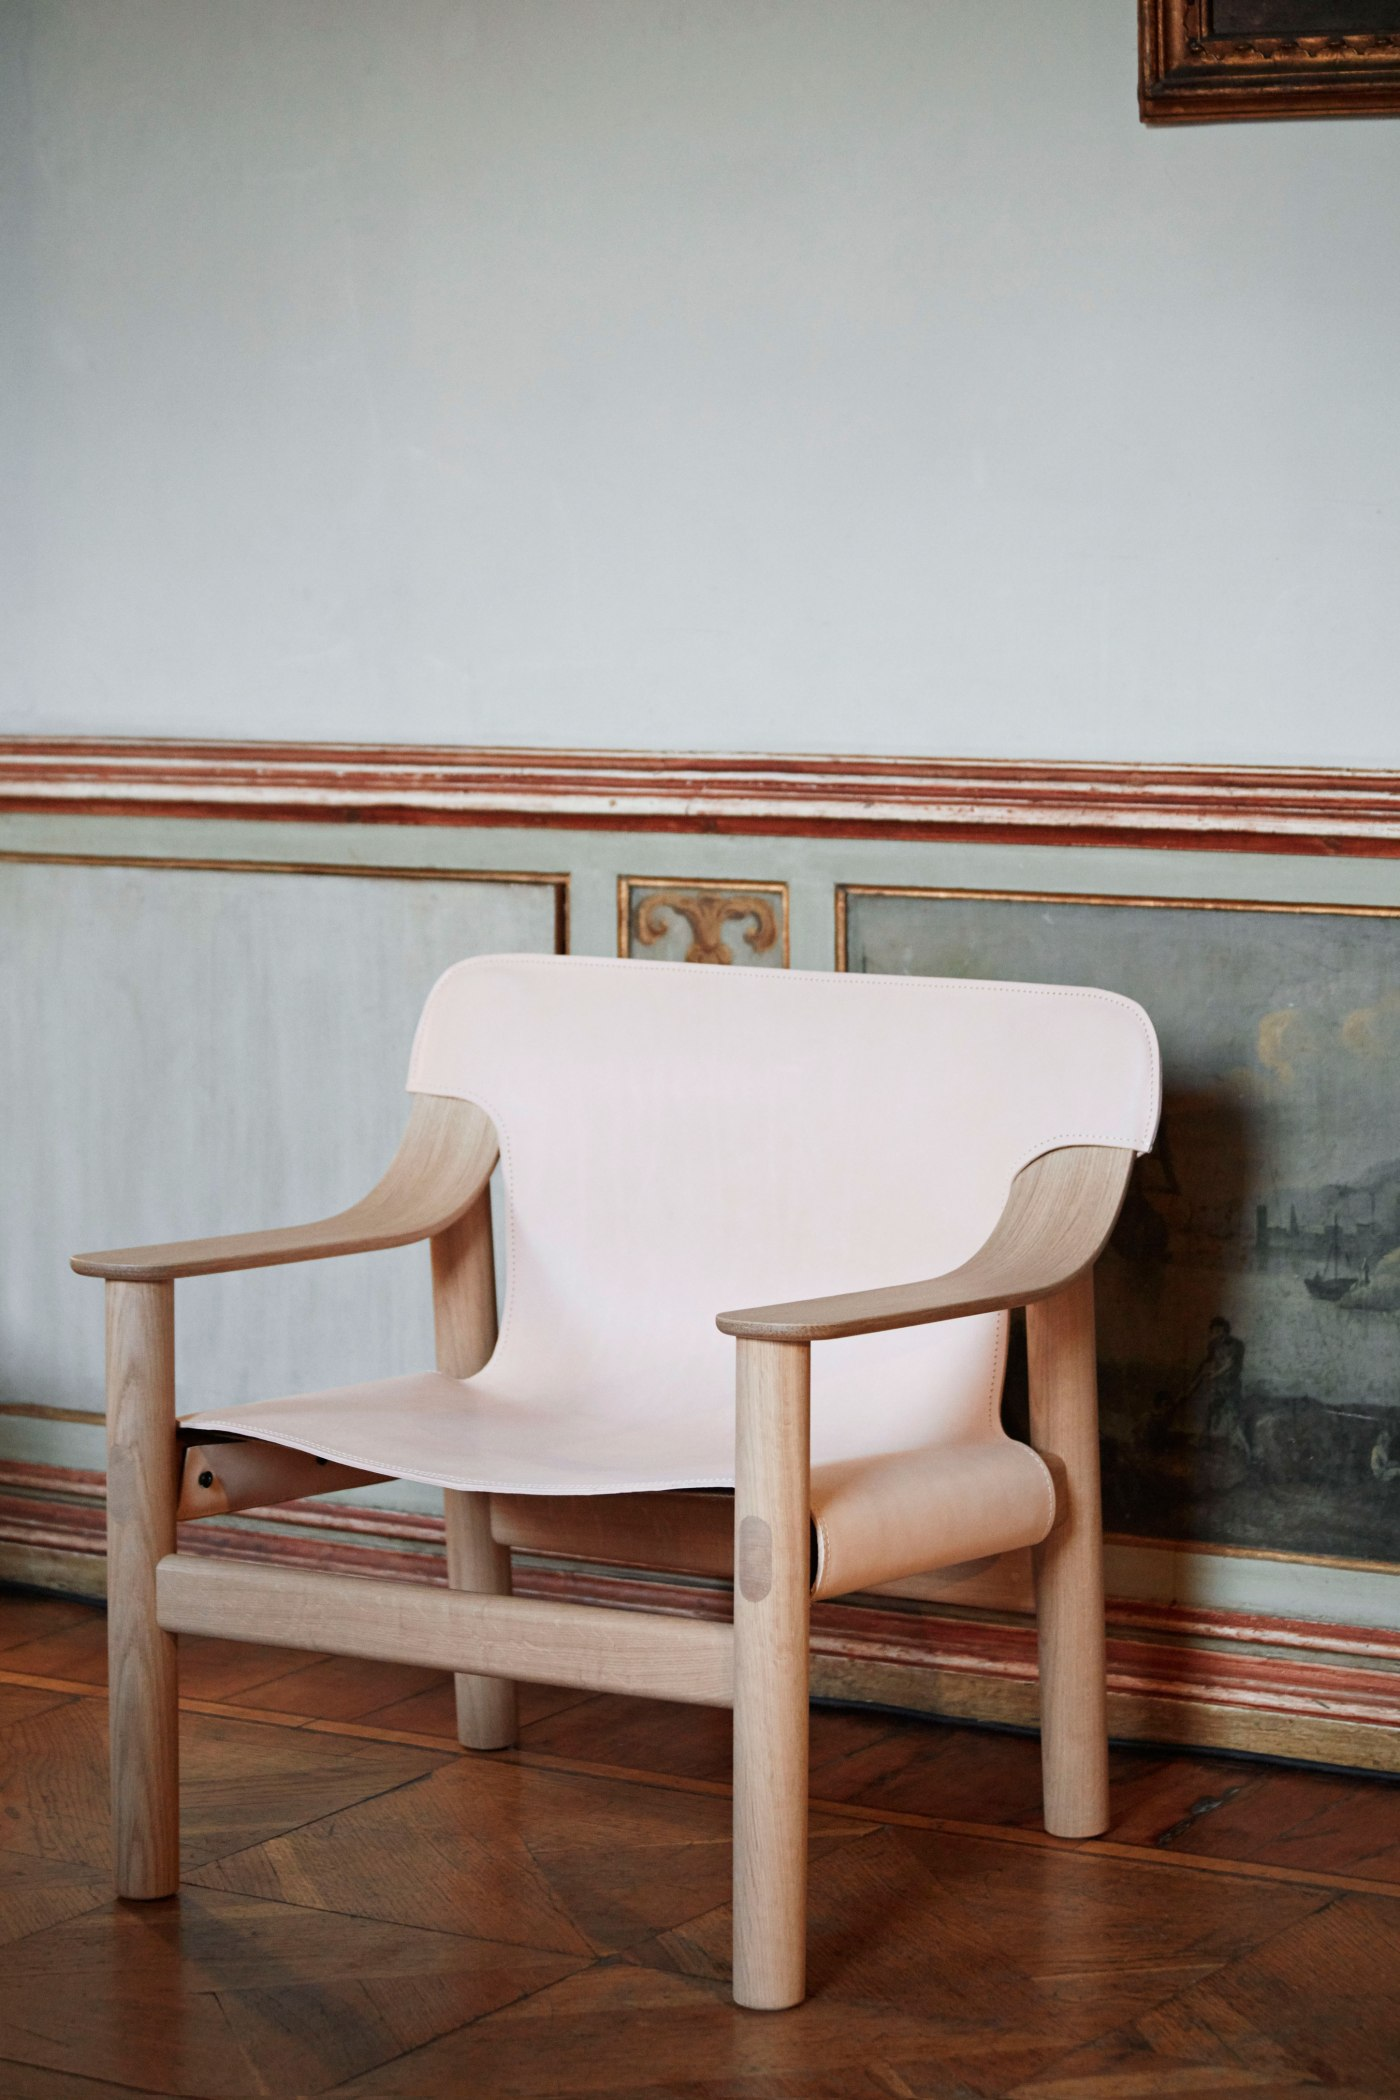 hay-milan-design-week-Bernard-Chair